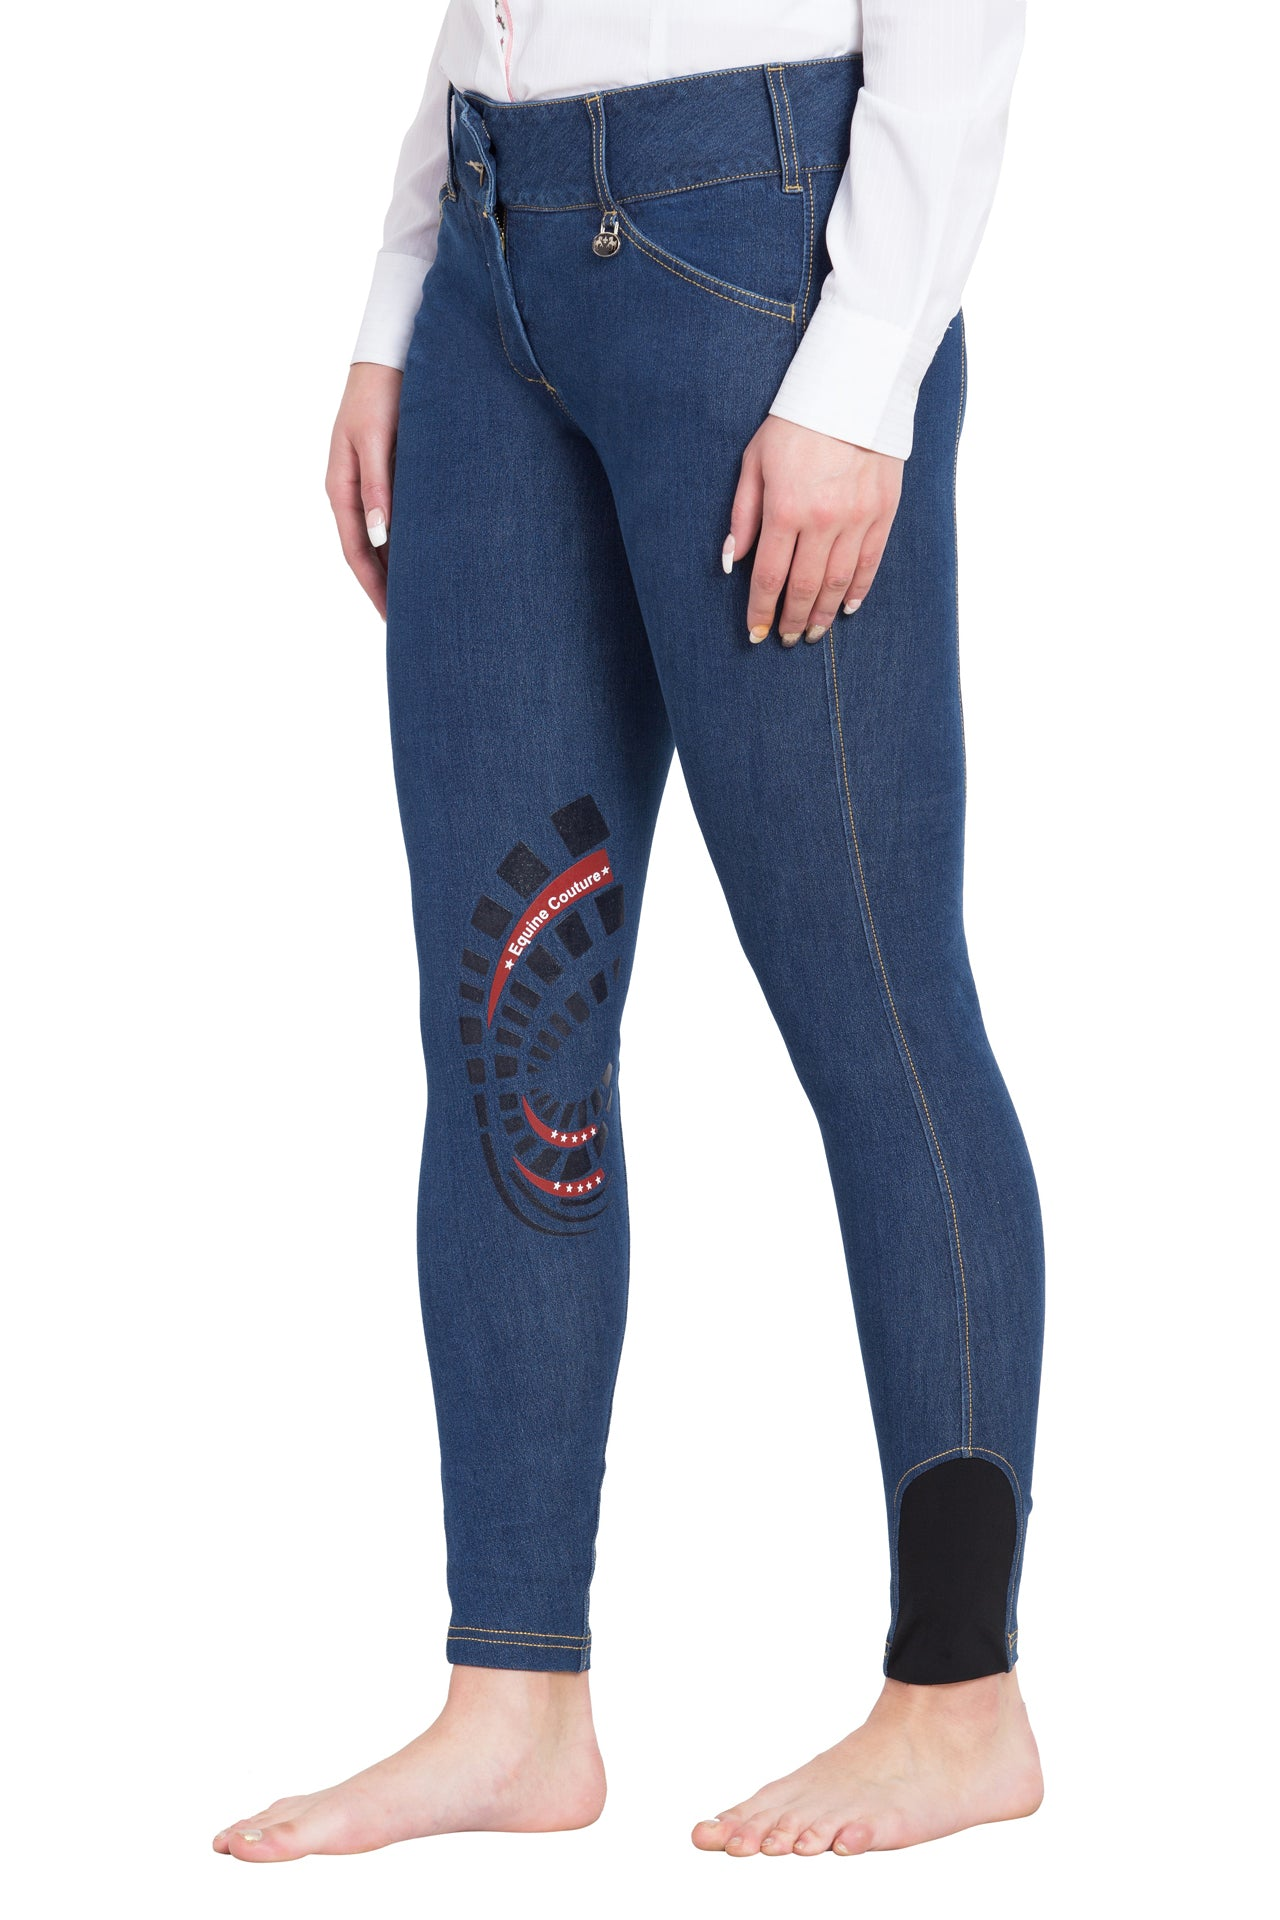 Equine Couture Ladies Calabasas Printed Silicone Patch Denim Jeans_1